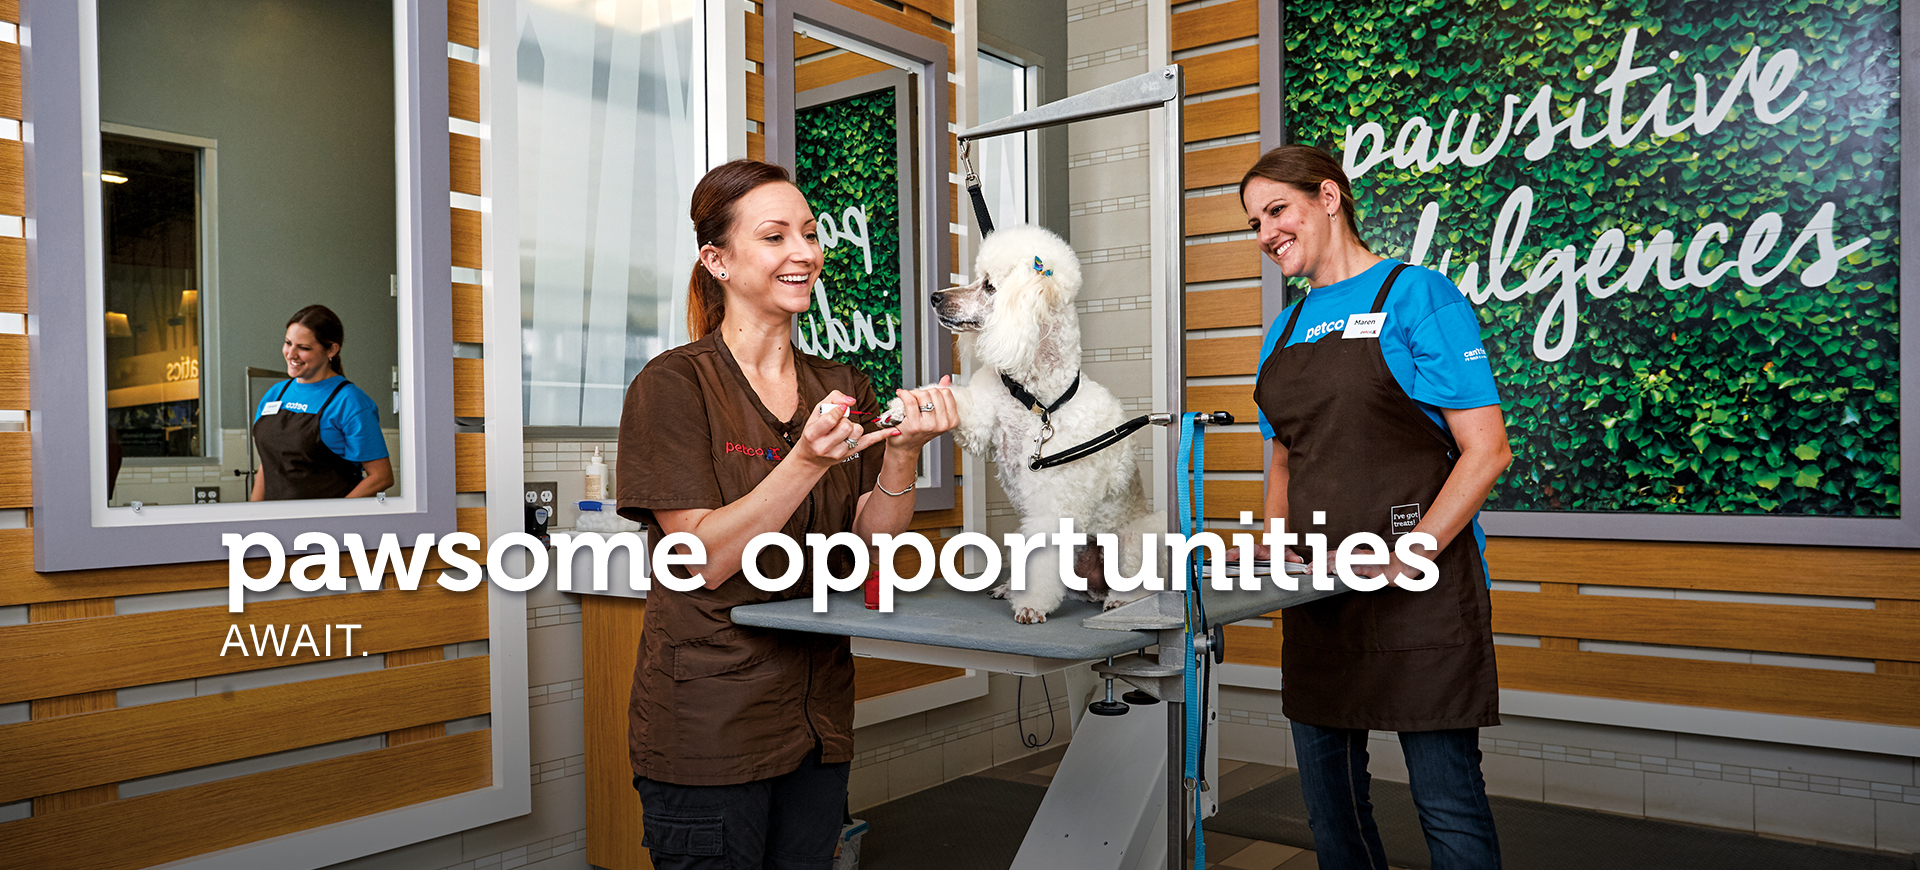 pawsome opportunities